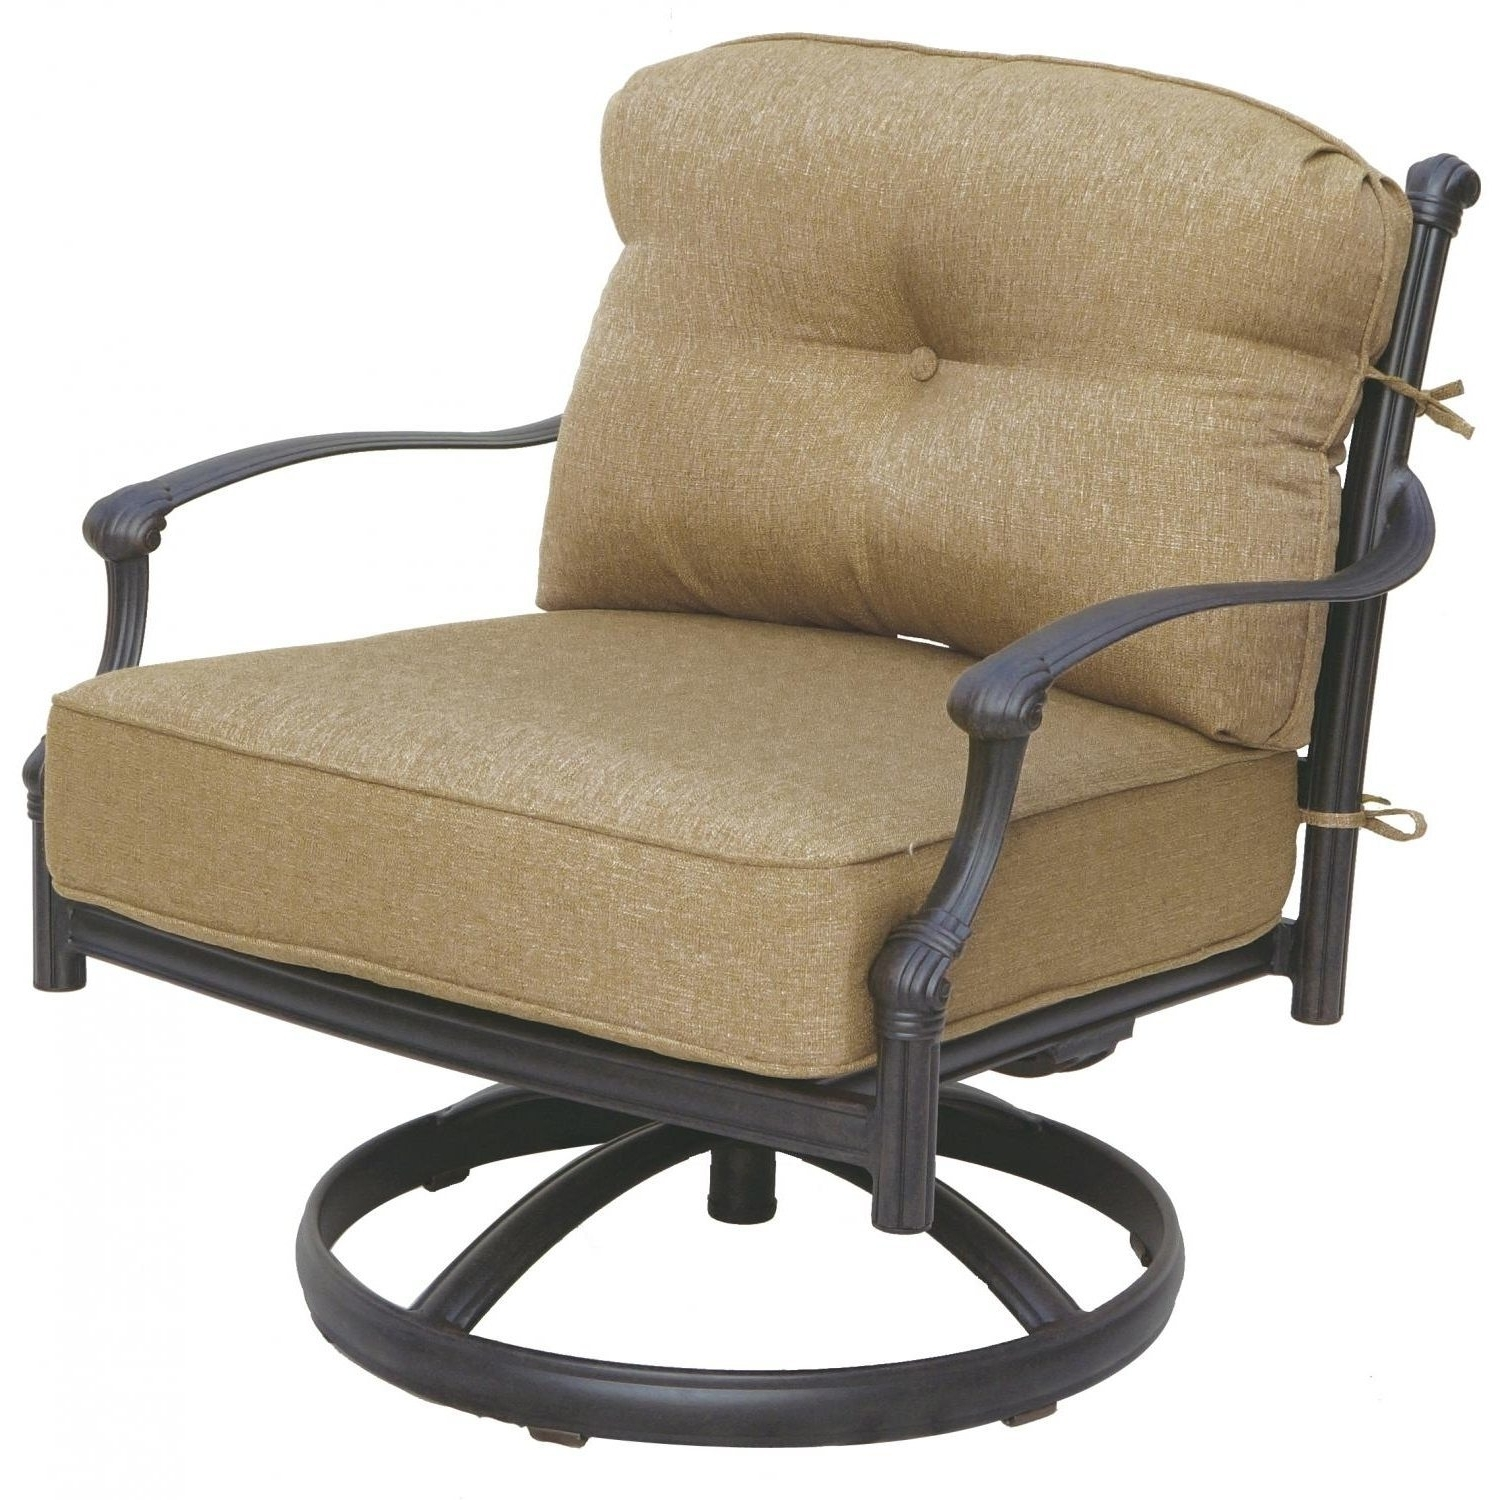 Most Recently Released Rocking Chairs At Target With Regard To Livingroom : Extraordinary Swivel Patio Chairs Target Rocker Home (View 11 of 20)